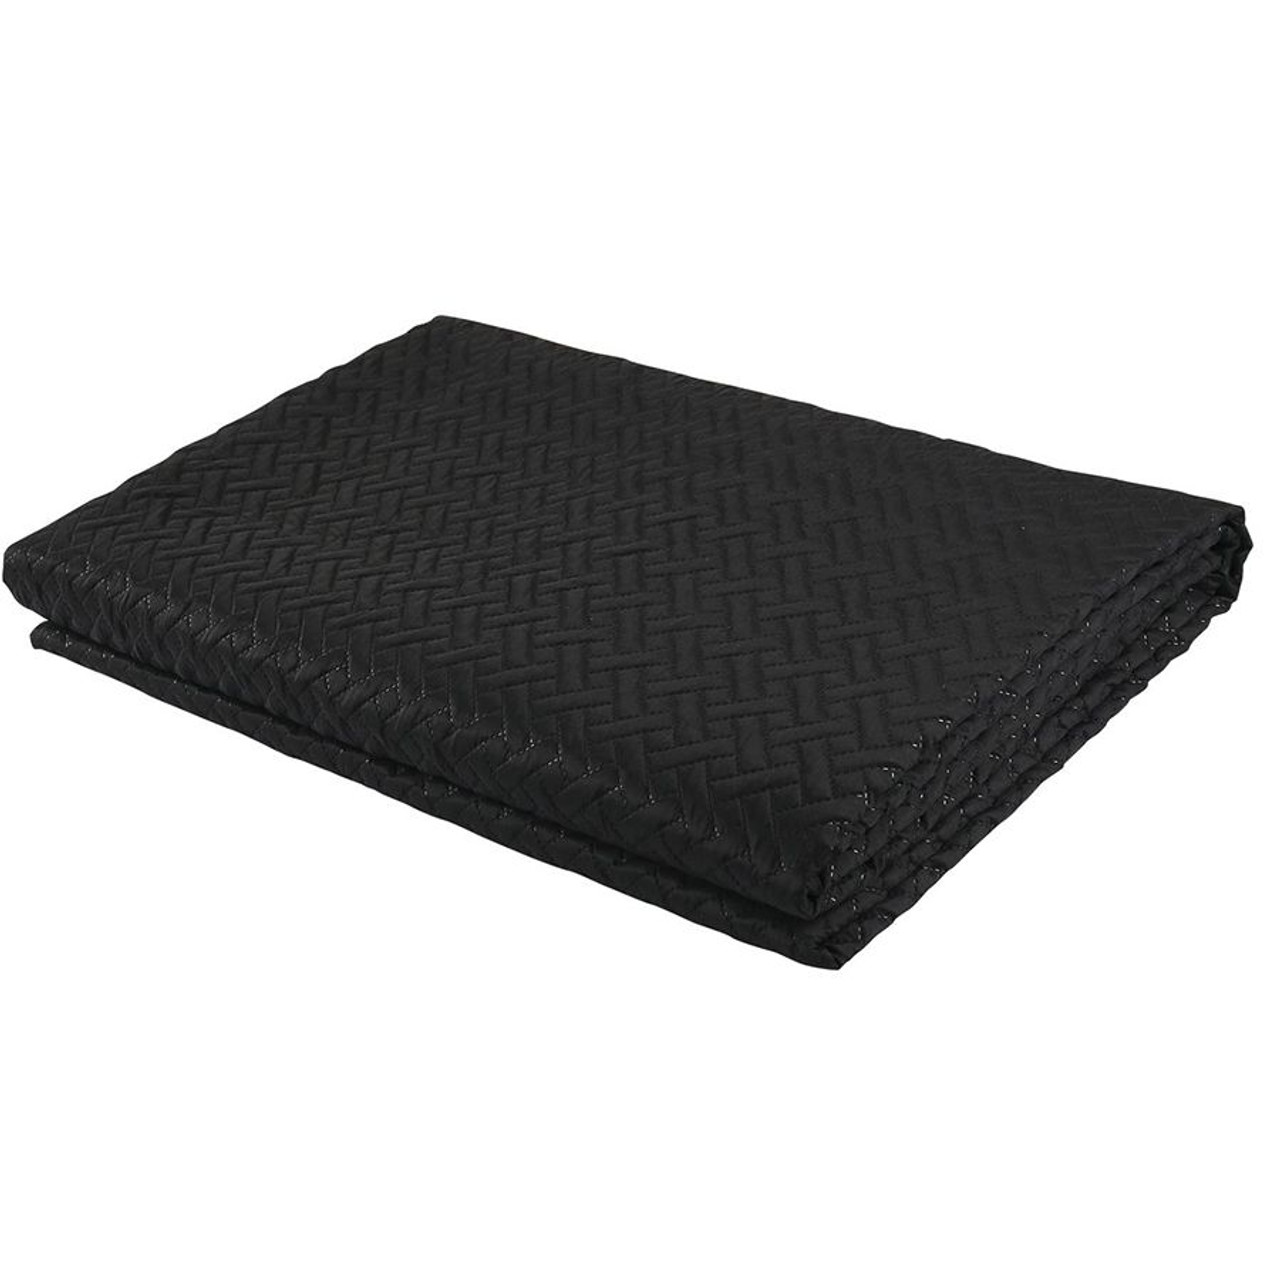 3 PC Squared Stitched Pinsonic Reversible Oversized Bedspread Black Color